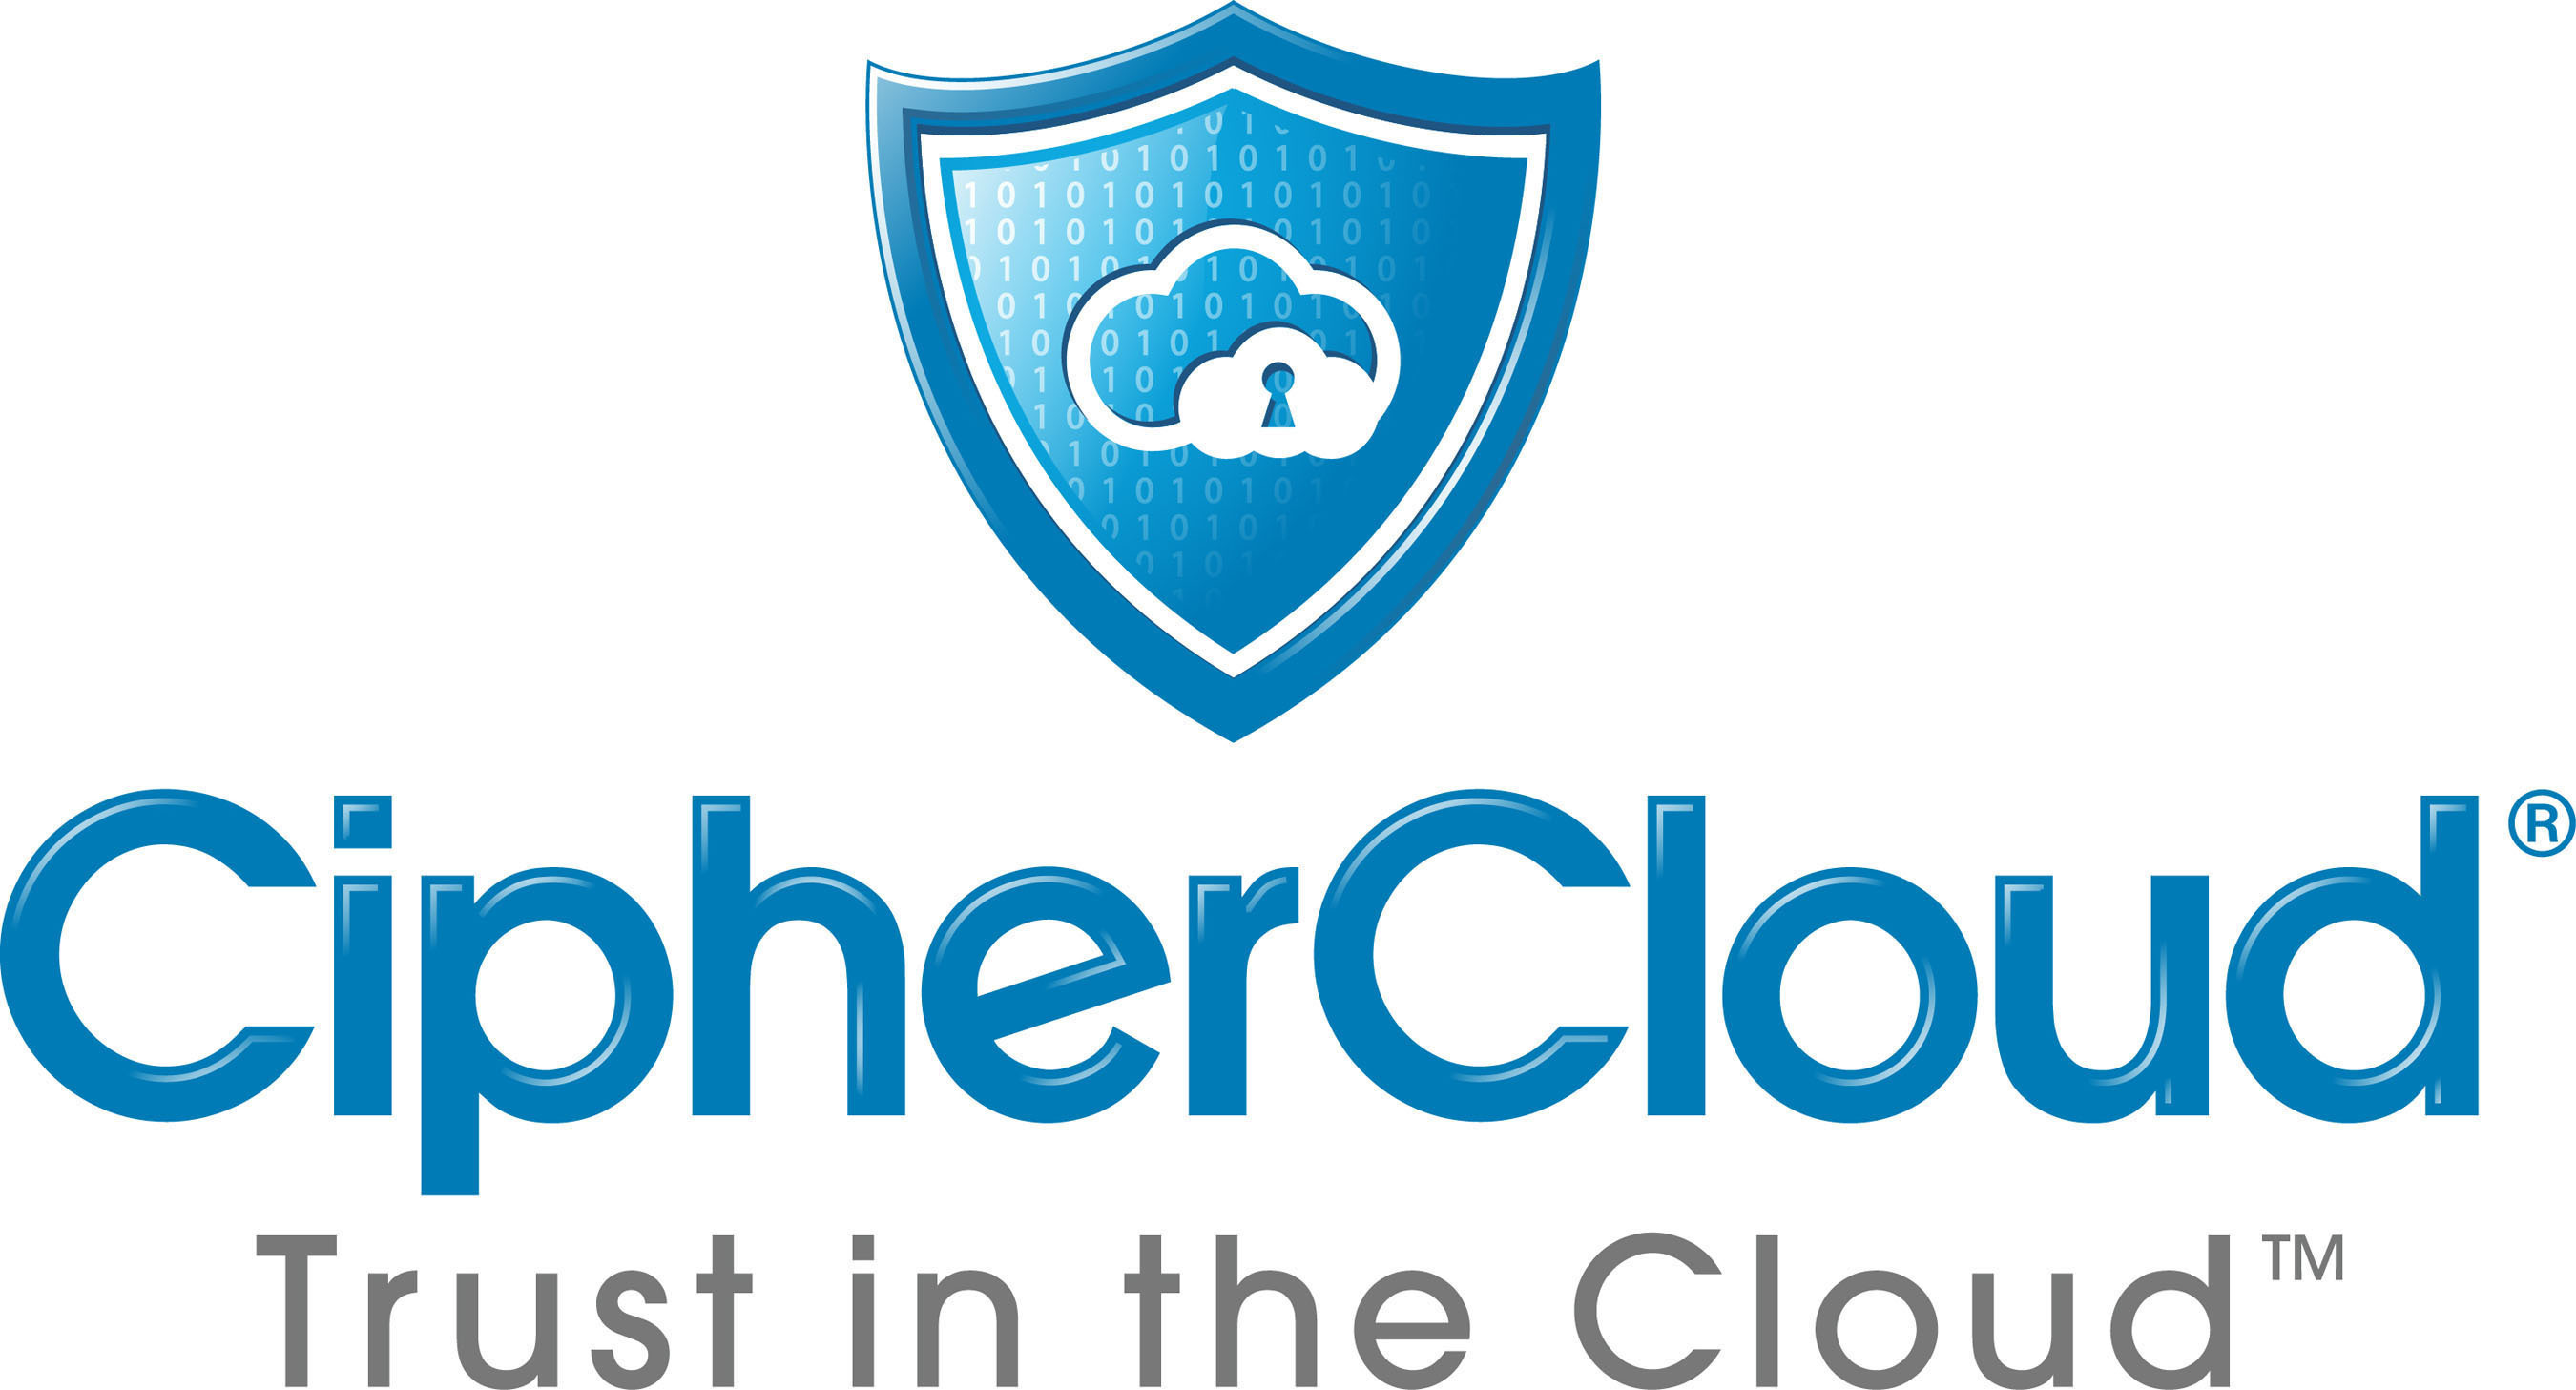 CipherCloud, the leader in cloud information protection, enables organizations to securely adopt cloud applications by overcoming data privacy, residency, security, and regulatory compliance risks. CipherCloud's open platform provides comprehensive security controls including encryption, tokenization, cloud data loss prevention, cloud malware detection, and activity monitoring. The CipherCloud product portfolio protects popular cloud applications out-of-the-box such as Salesforce, Force.com, Chatter, Box, Google Gmail, Microsoft Office 365, and Amazon Web Services. CipherCloud's ground breaking technology protects sensitive information in real time, before it is sent to the cloud, while preserving application usability and functionality for its more than 1.2 million business users.